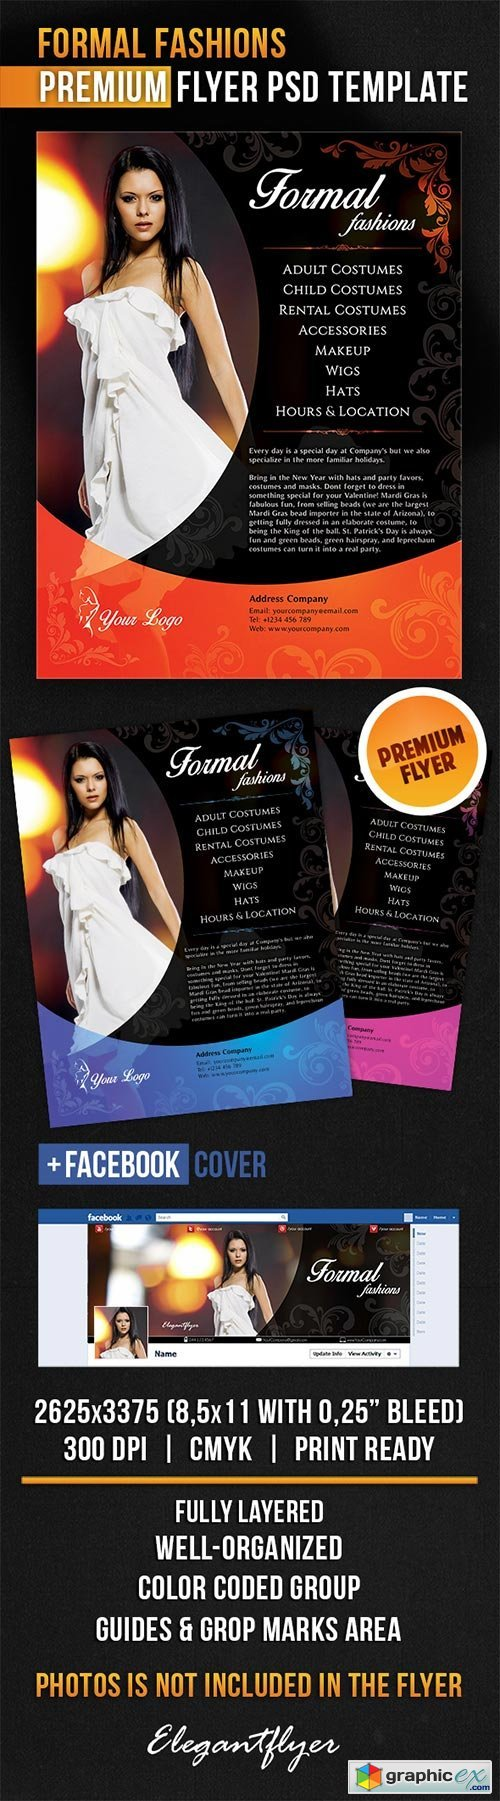 Formal Fashions Flyer PSD Template + Facebook Cover